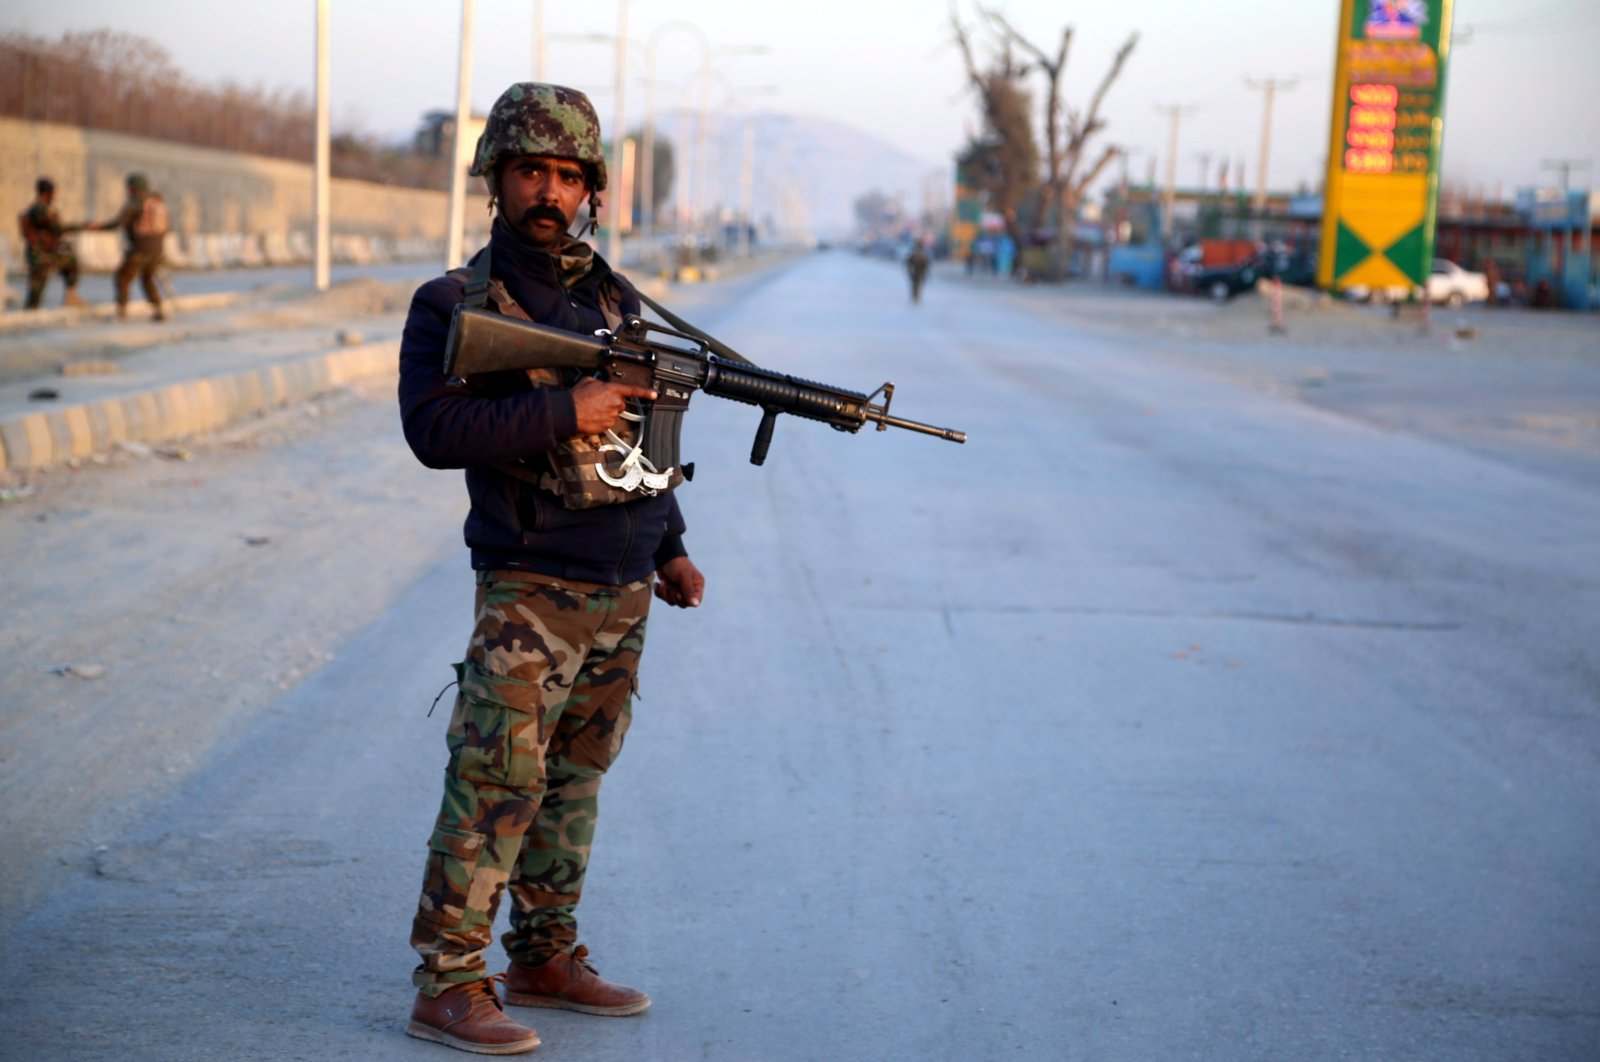 An Afghan soldier stands guard at the scene of a bomb blast that targeted the vehicle of security officials in Jalalabad, Afghanistan, Feb. 11, 2021. (EPA Photo)